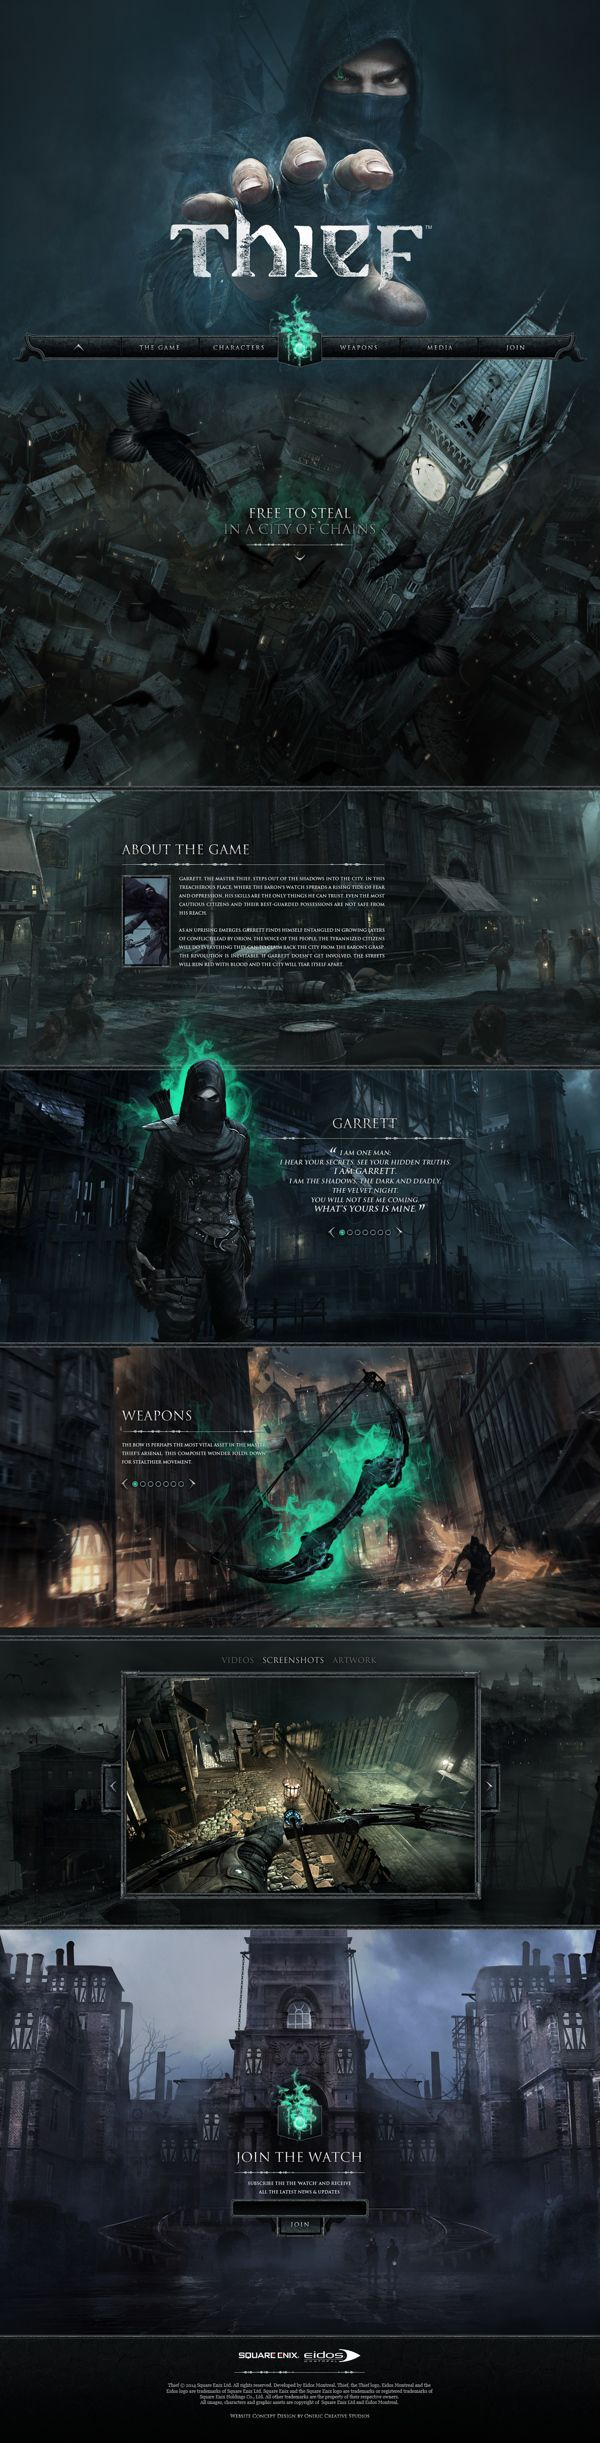 Thief 4 Game Website Concept Design on Behance